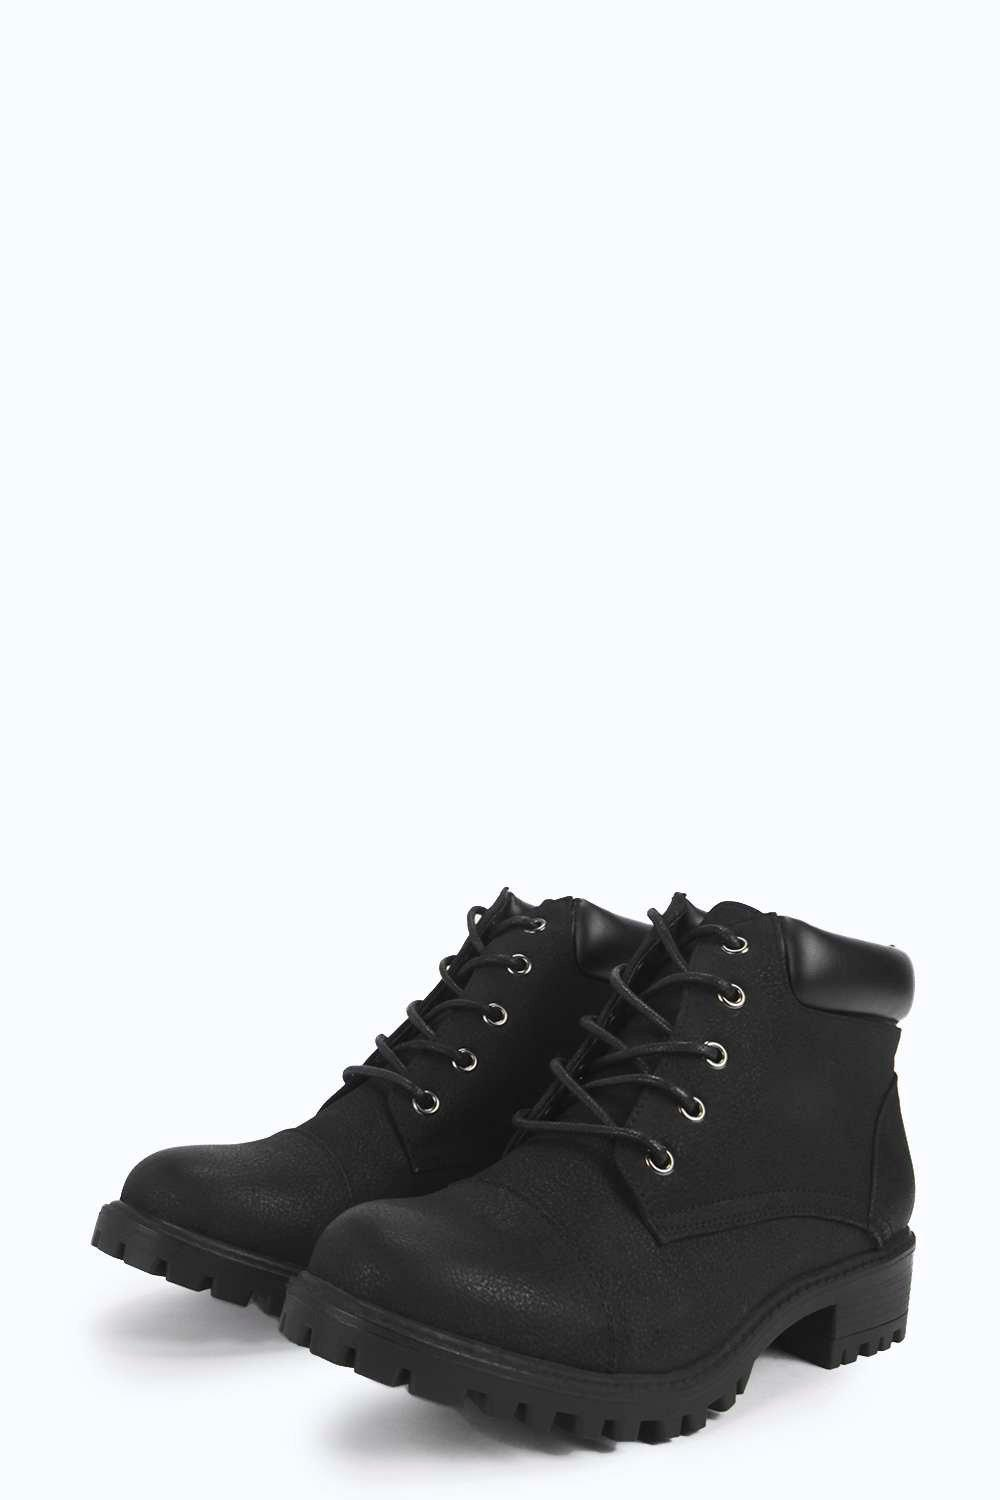 Boohoo Synthetic Amber Zip Trim Lace Up Hiker Boot in Black